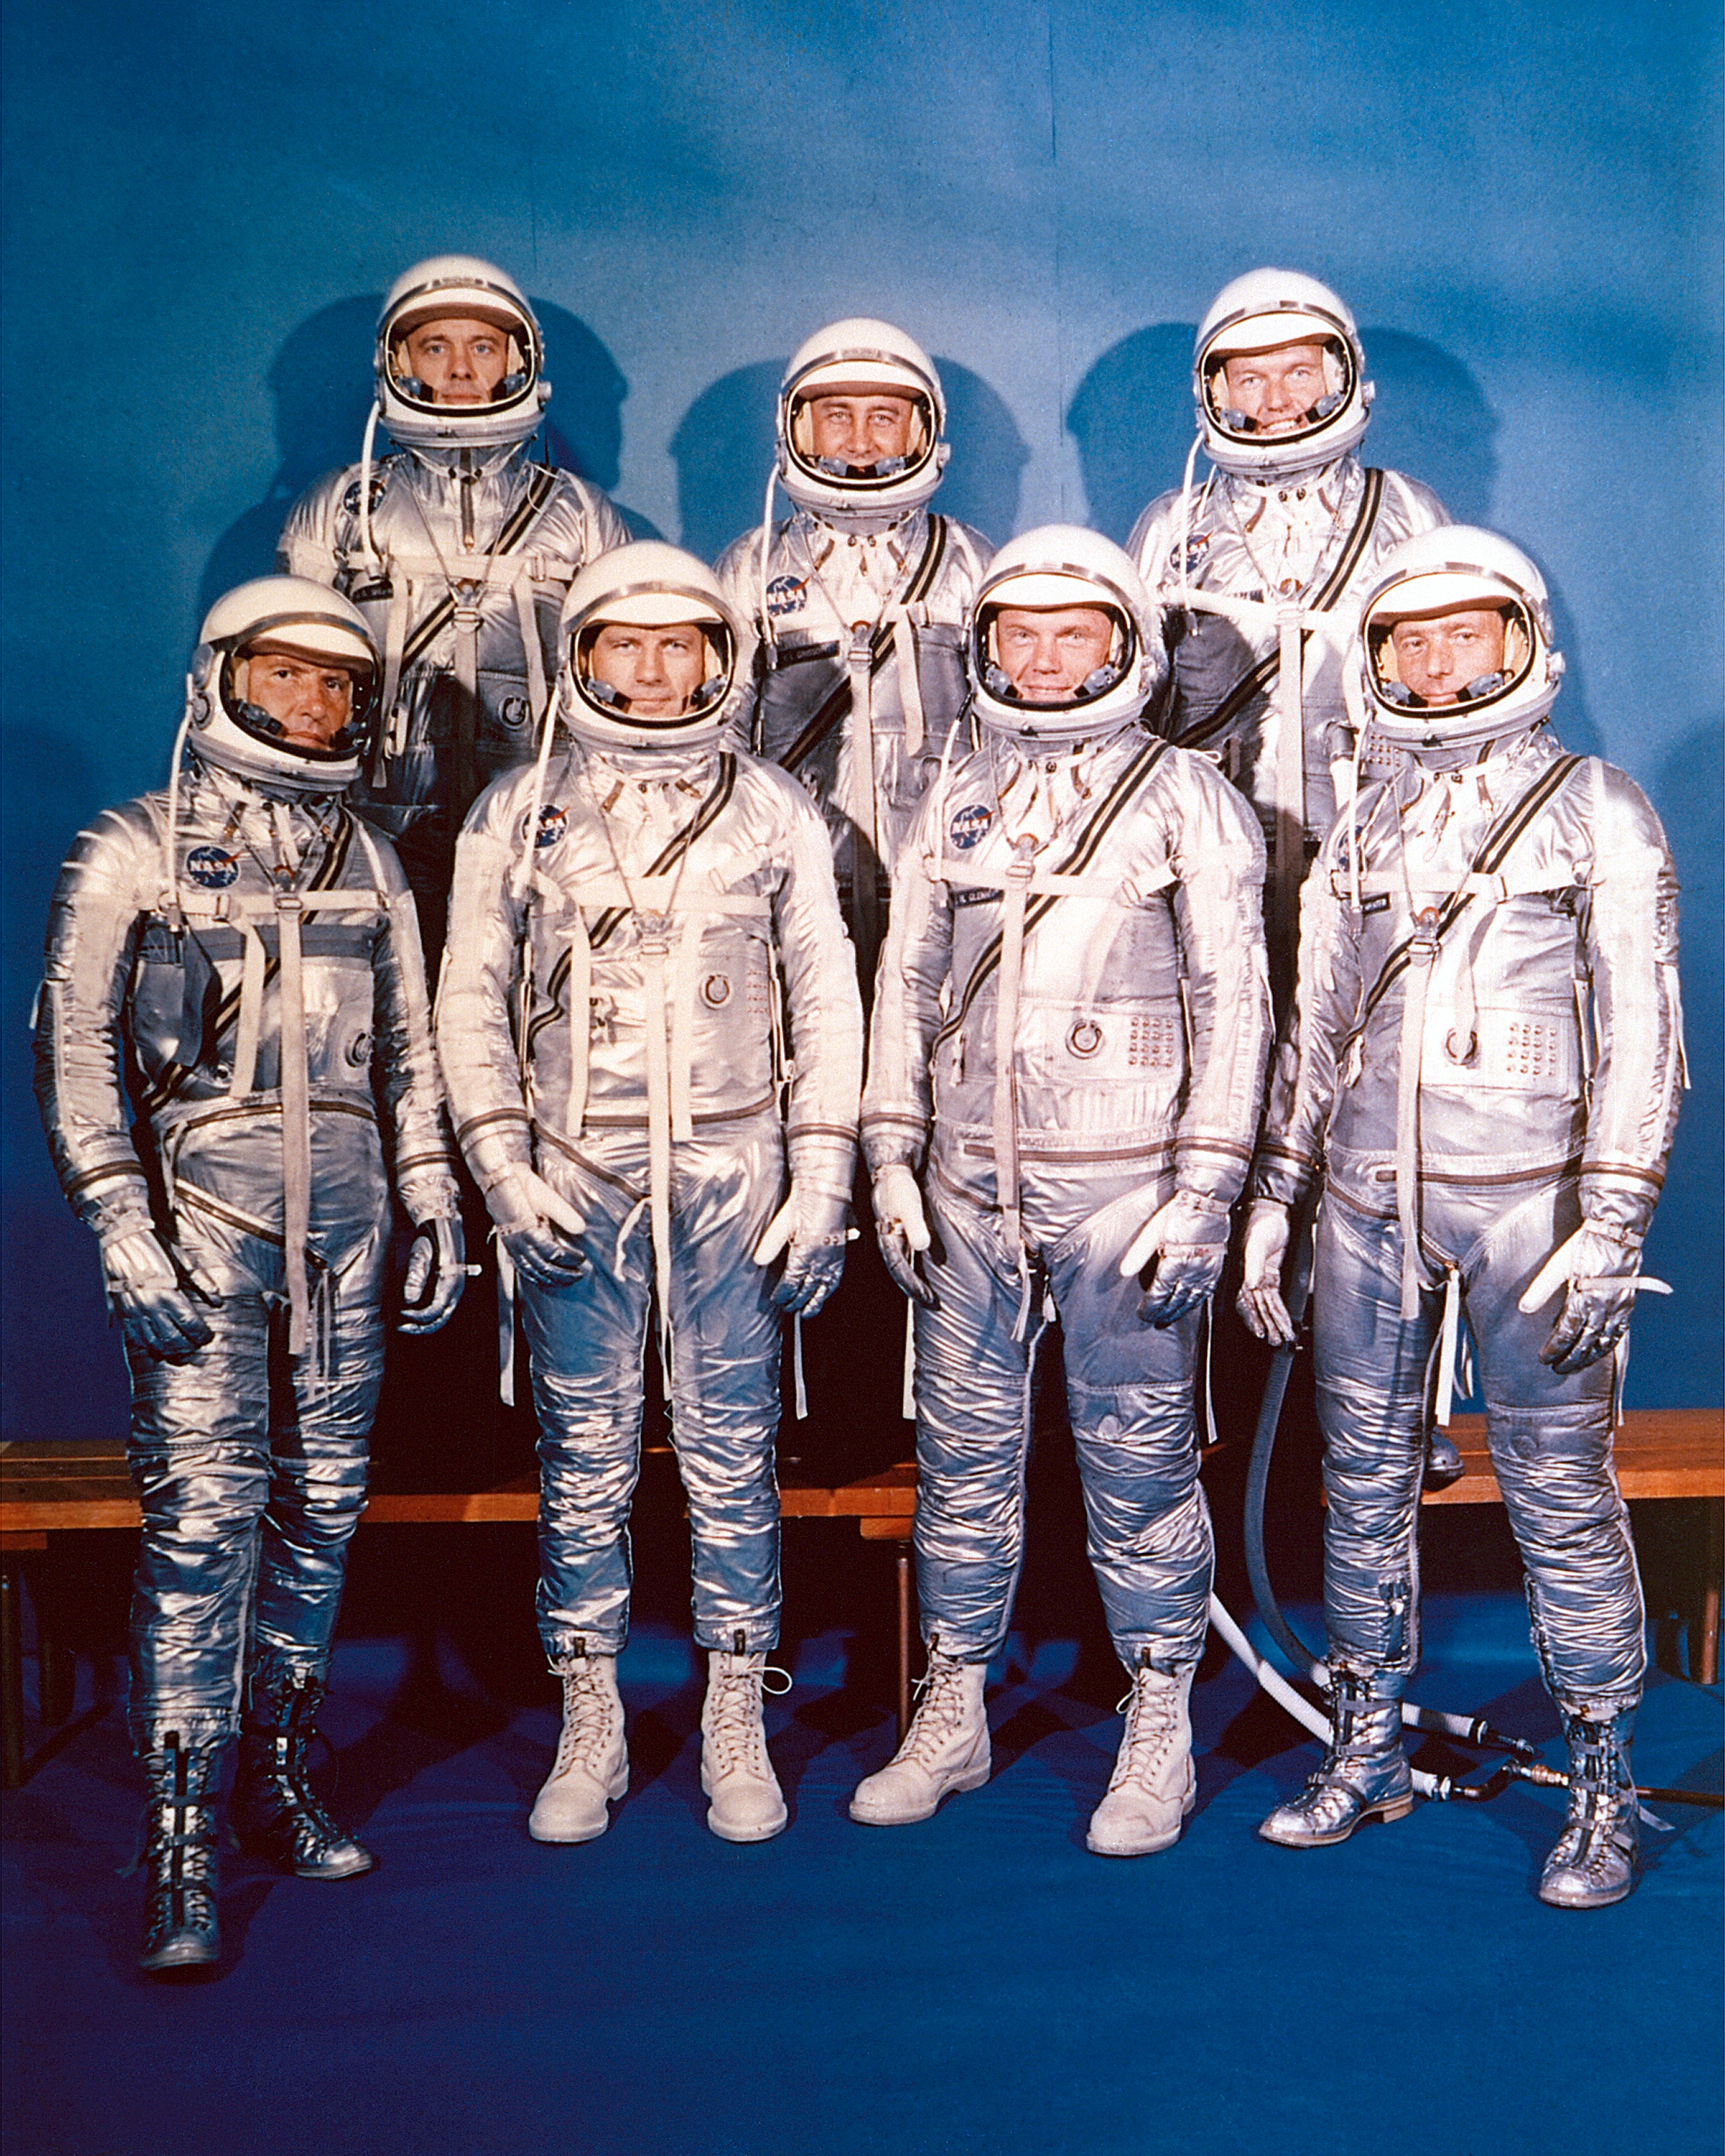 File:Project Mercury Astronauts - GPN-2000-000651.jpg ...